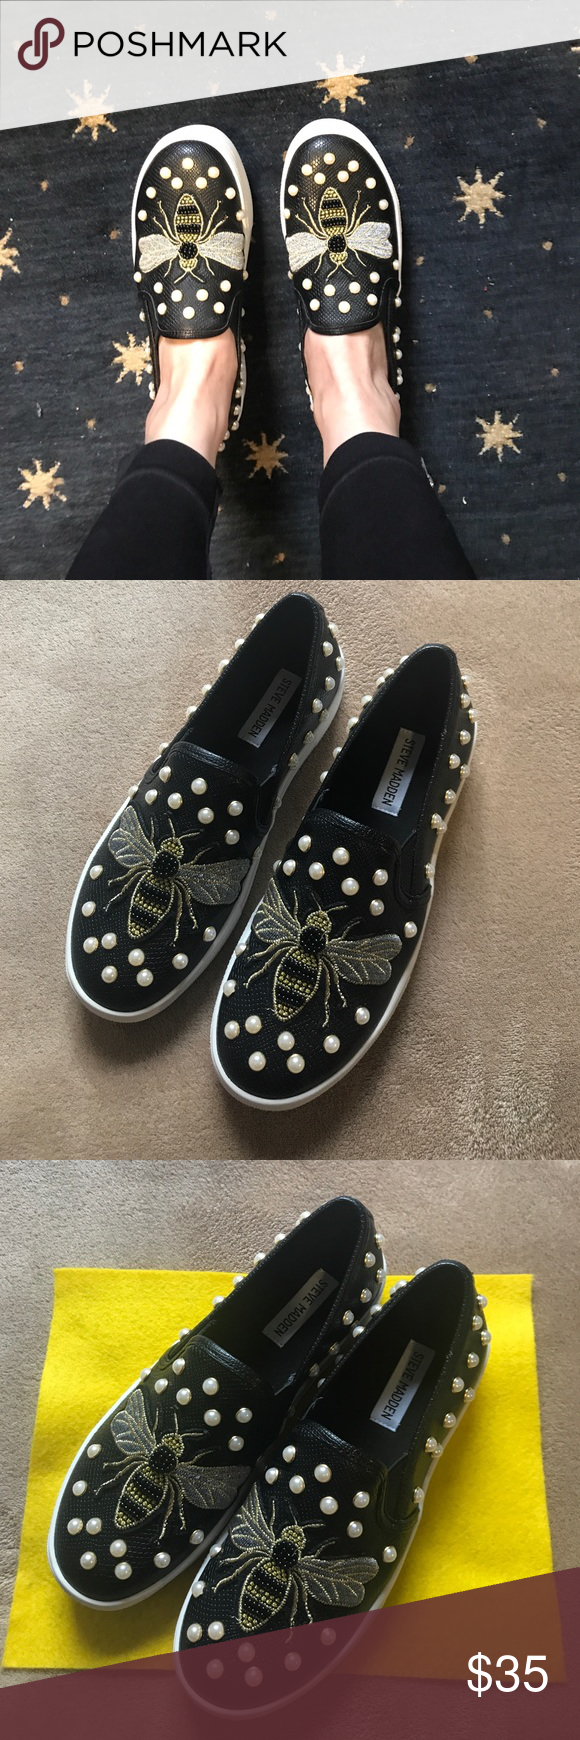 Steve Madden Polly Slip On Sneakers Steven Madden flat shoes very  comfortable and fashionable. Steve